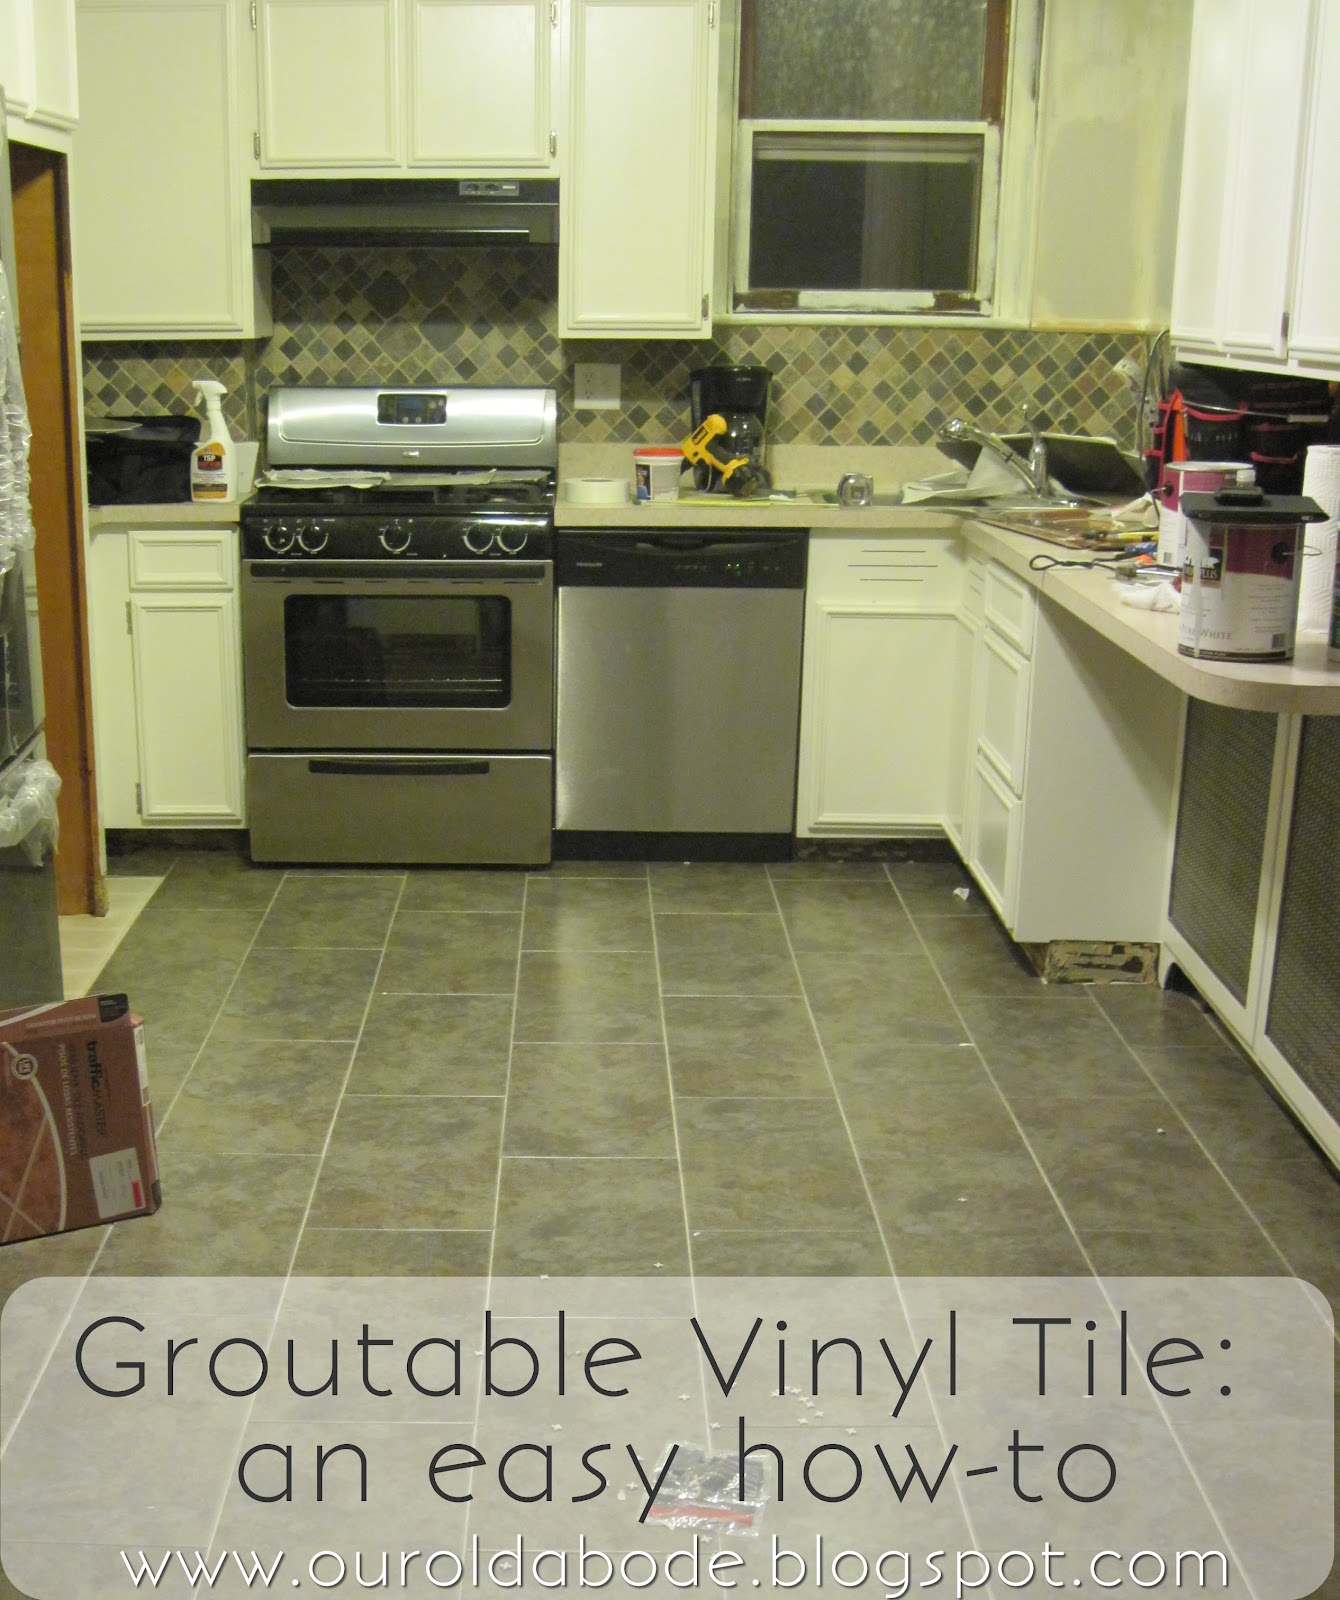 Our old abode kitchen floor groutable vinyl tile for Kitchen vinyl flooring